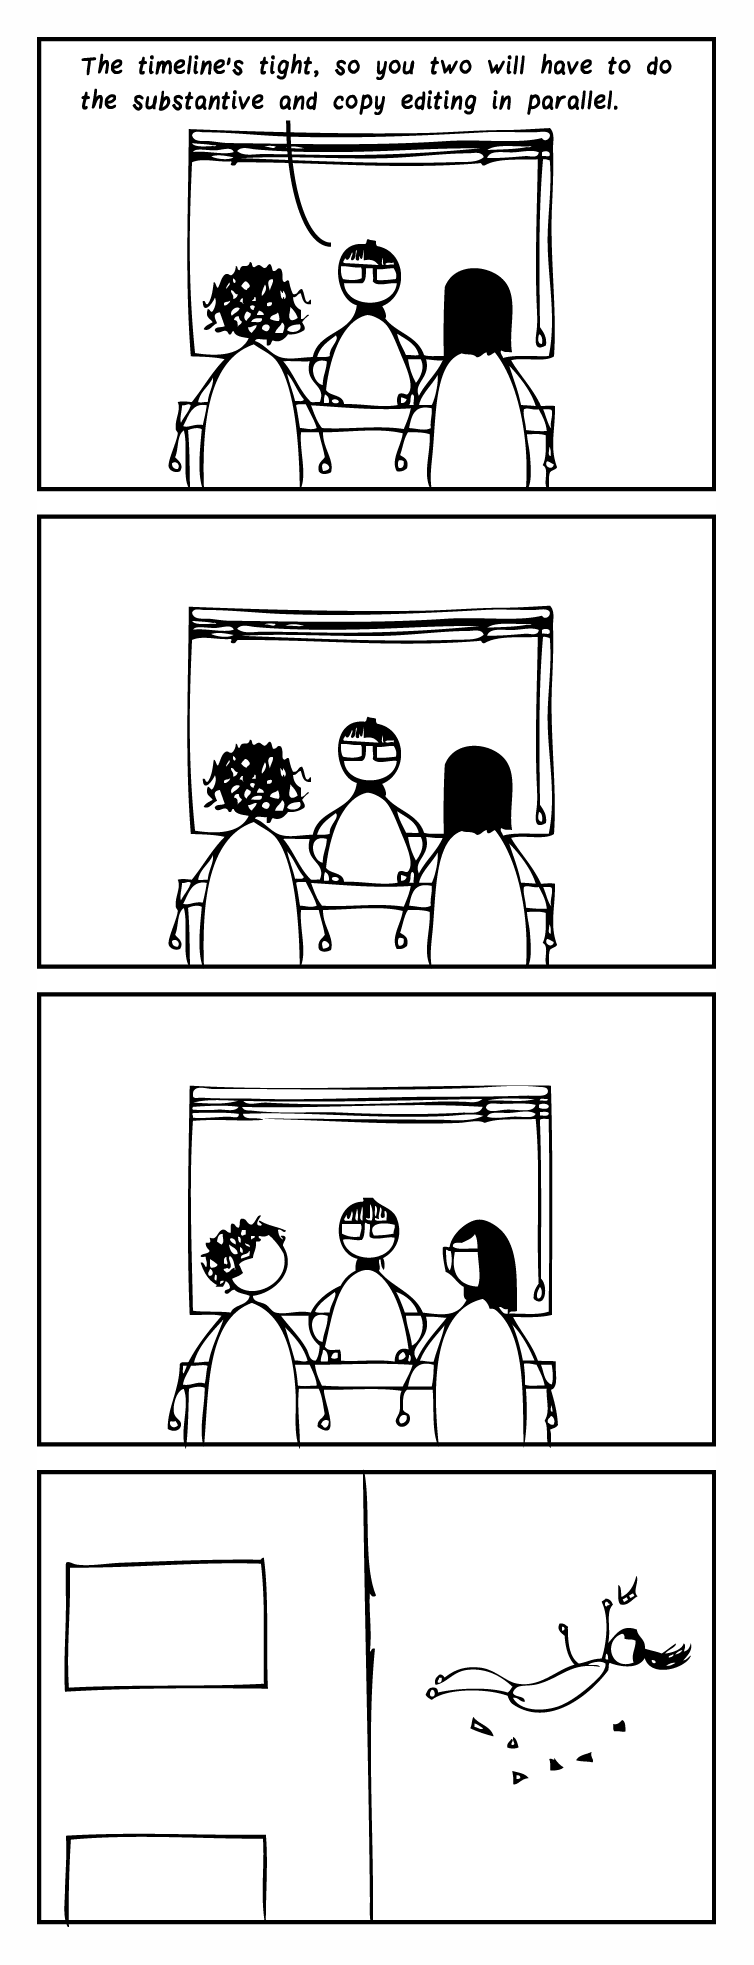 """Four-frame cartoon. Frame 1: A managing editor sits at a desk and talks to two editors. She says, """"The timeline's tight, so you two will have to do the substantive and copy editing in parallel."""" Frame 2: The editors stare back at her. Frame 3: The editors look at one another. Frame 4: You see the managing editor falling, having been thrown out the window."""